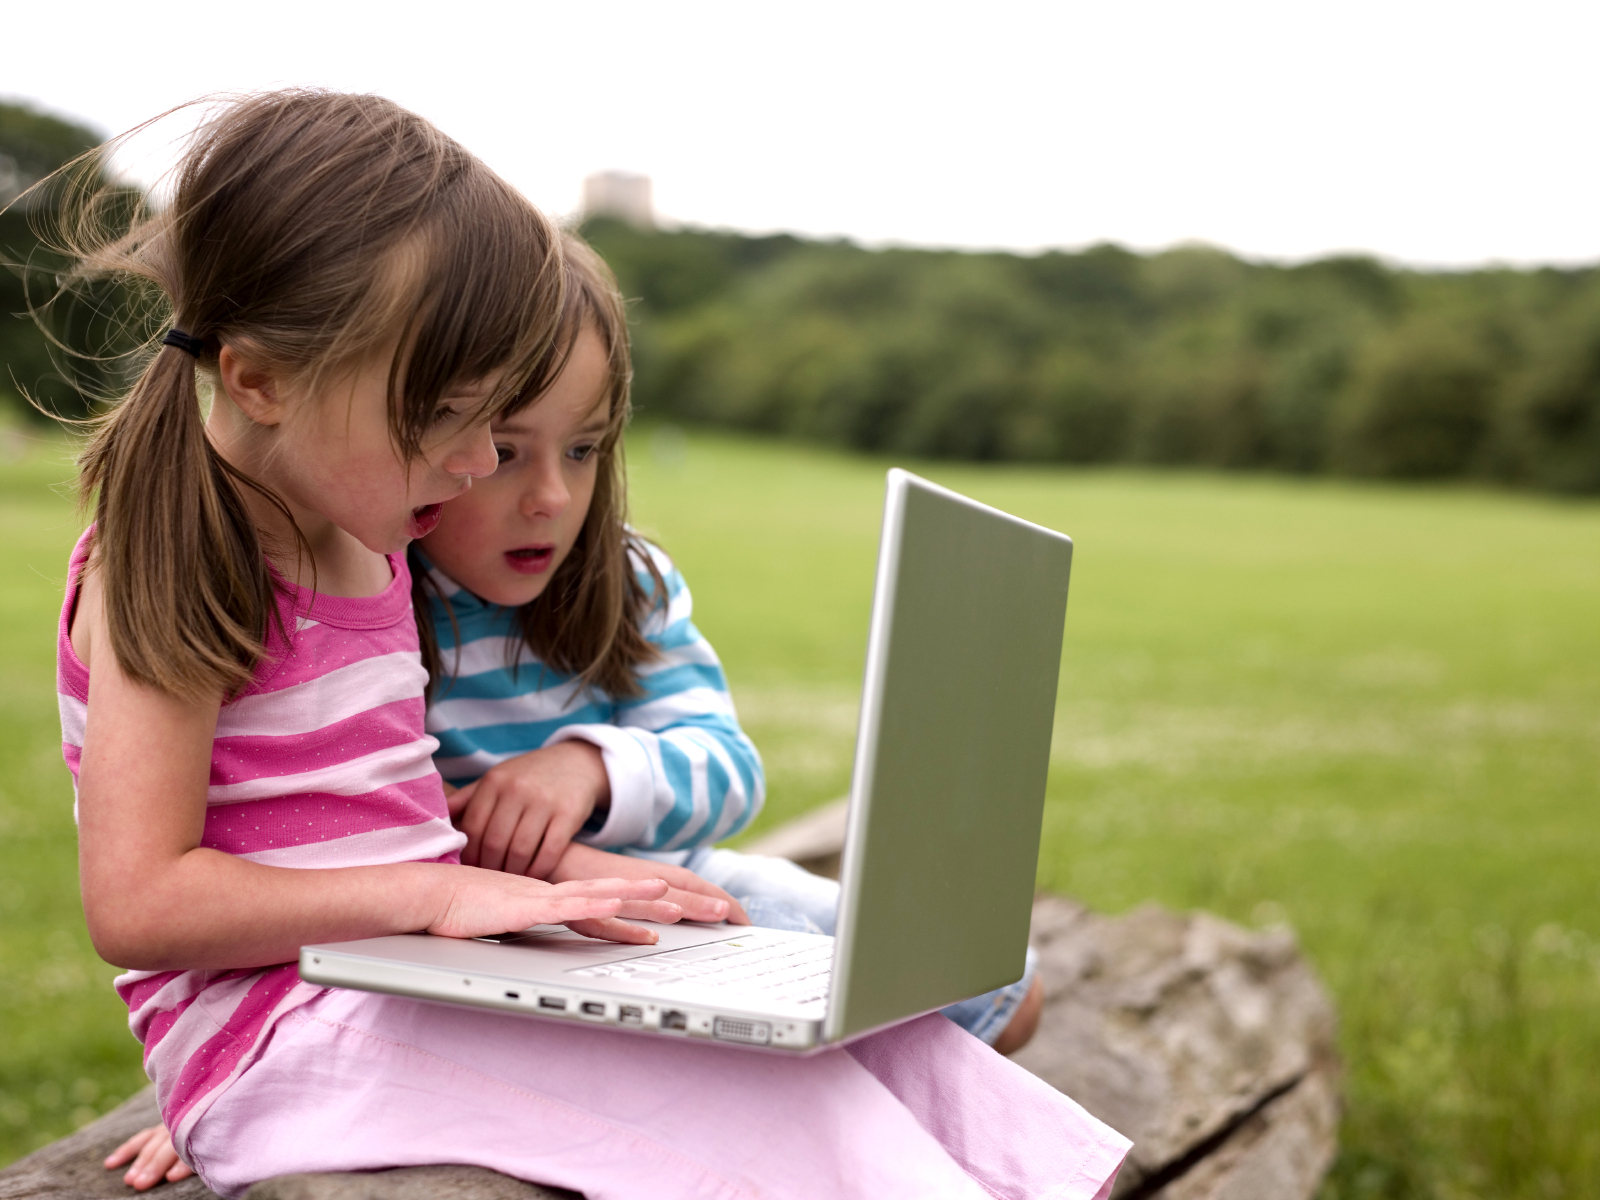 banner image is of Two girls looking at a computer